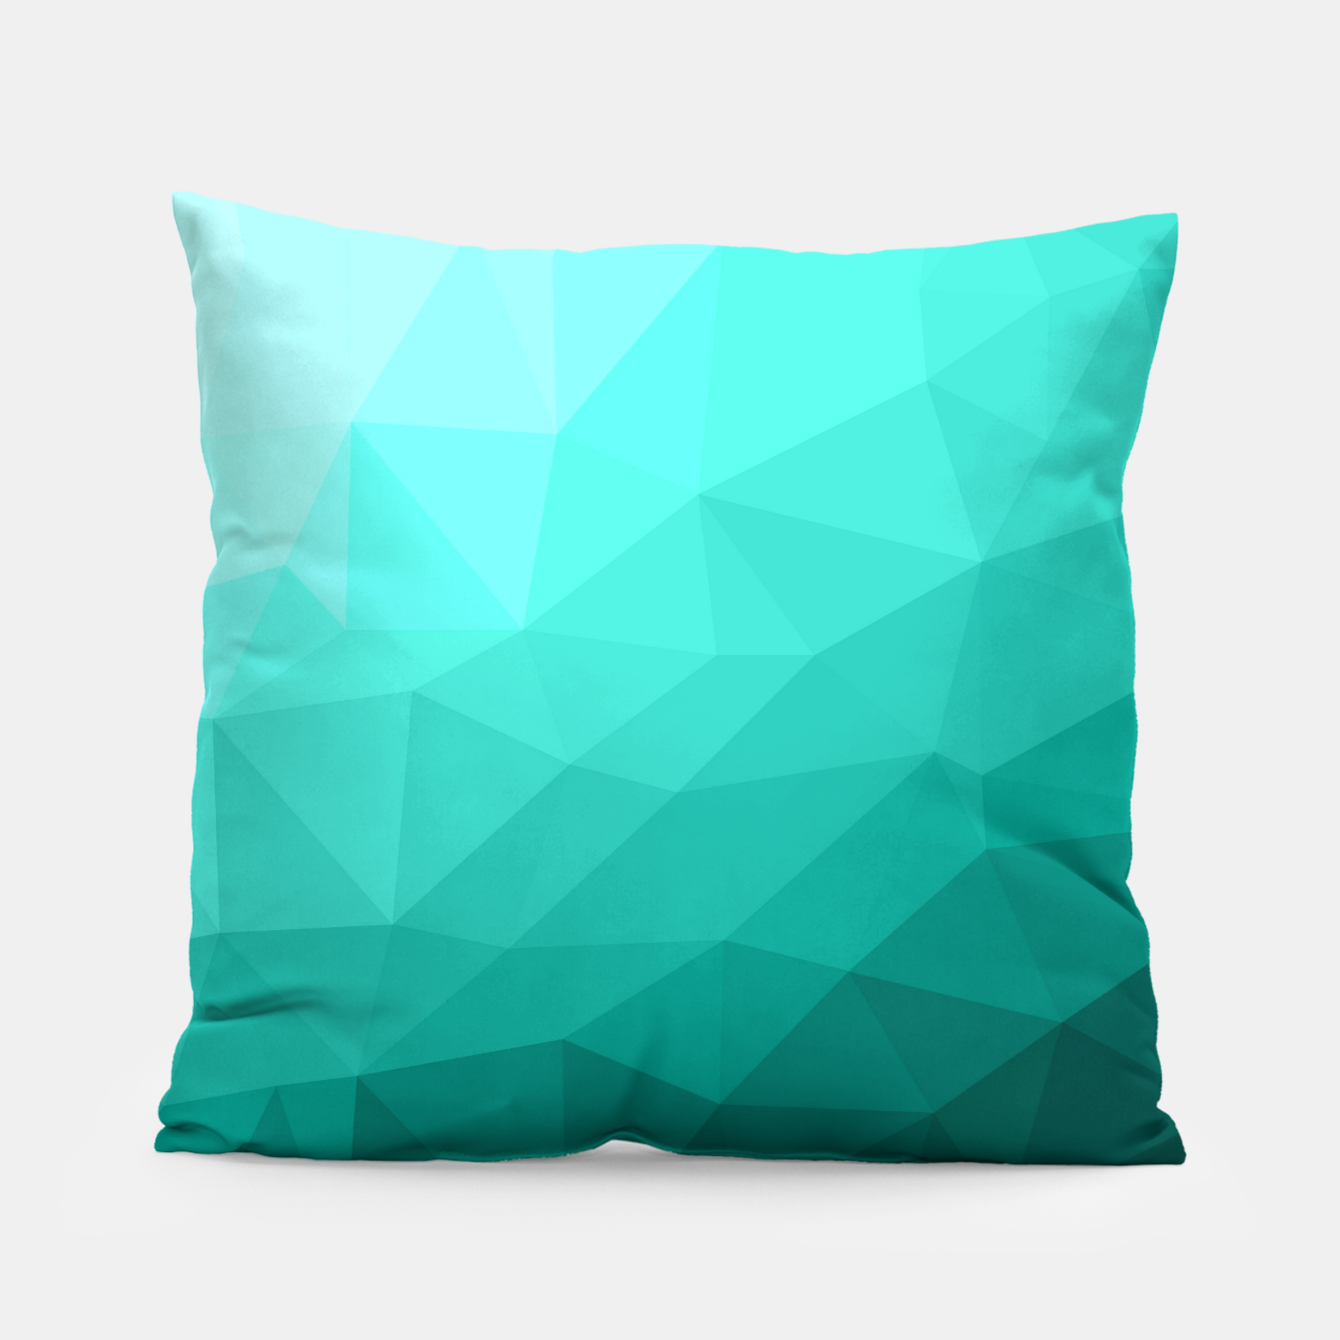 Image of Aqua Turquoise Gradient Geometric Mesh Pattern Pillow - Live Heroes